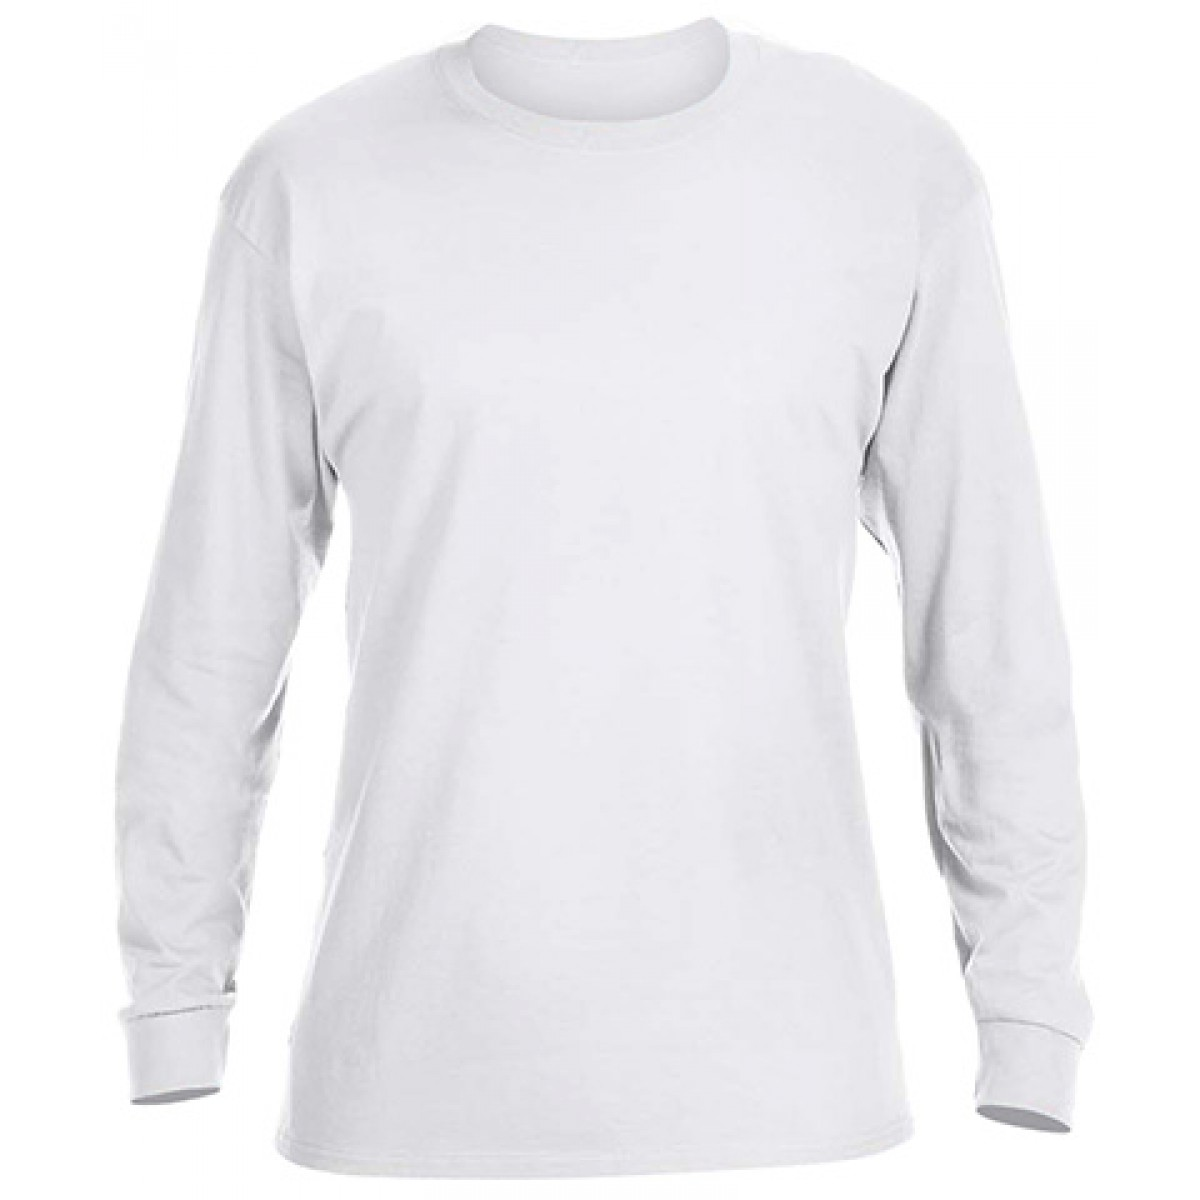 Basic Long Sleeve Crew Neck -White-L